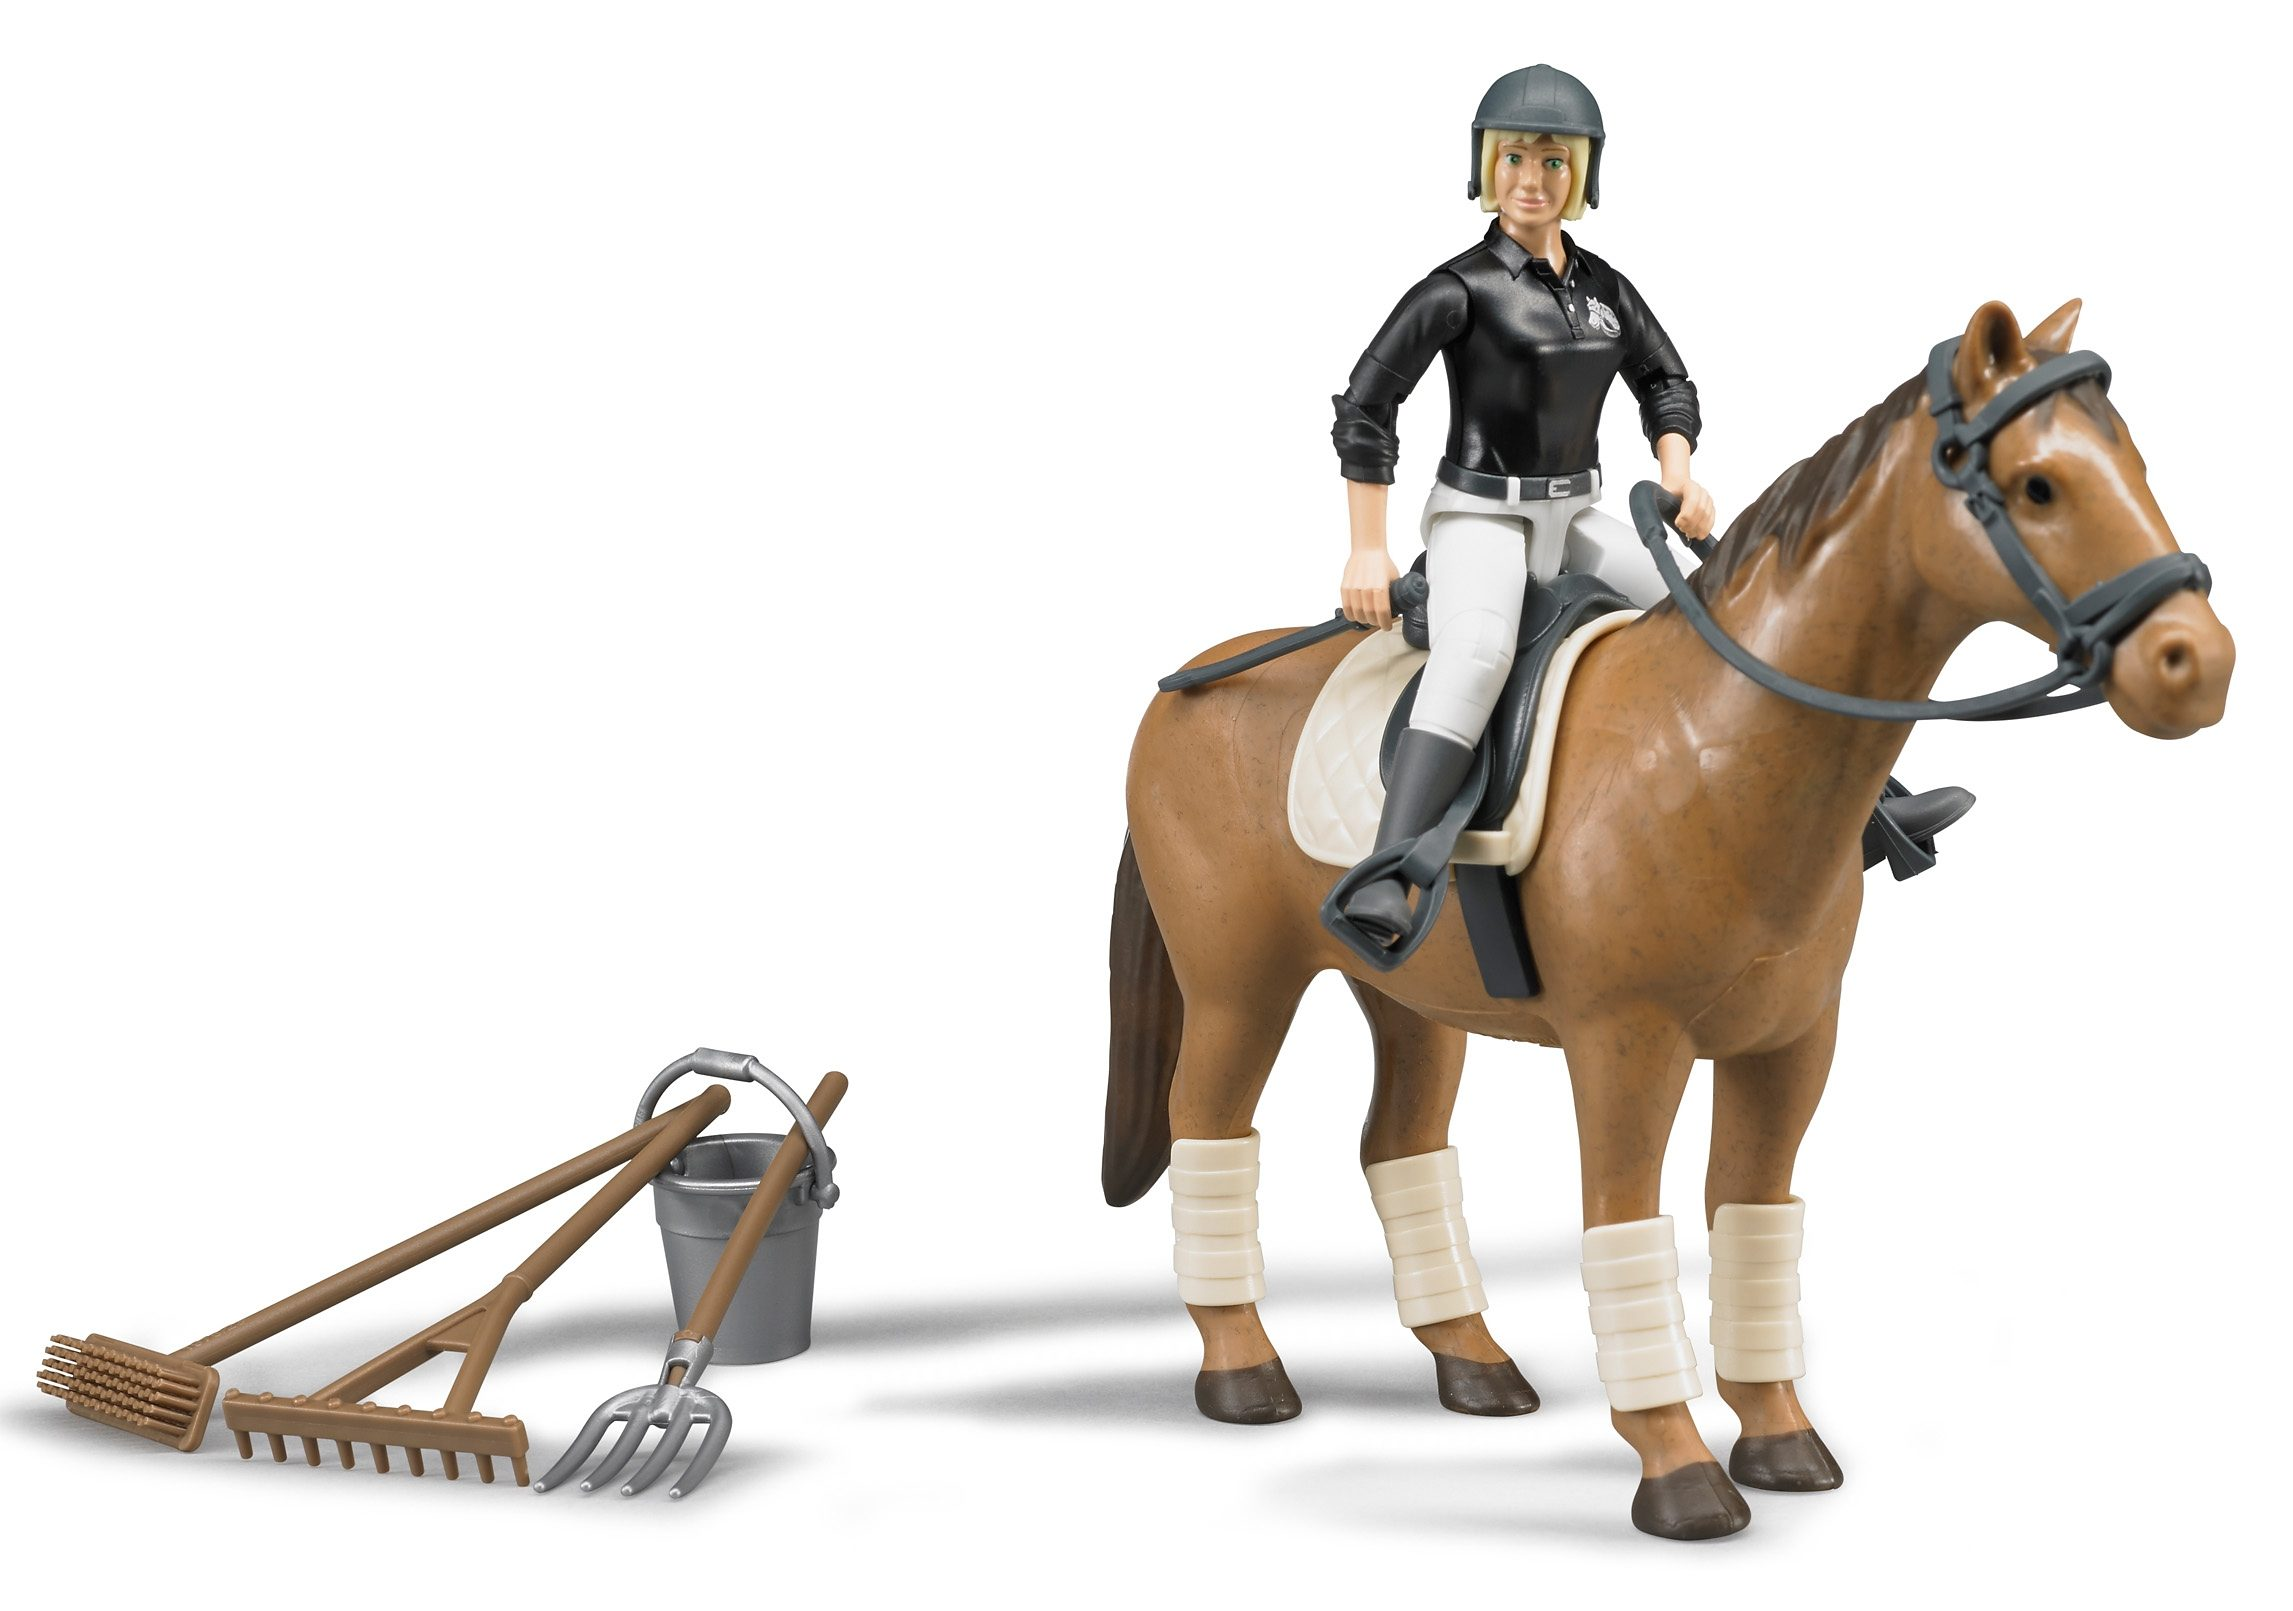 bruder® Figurenset Reiten, »bworld«